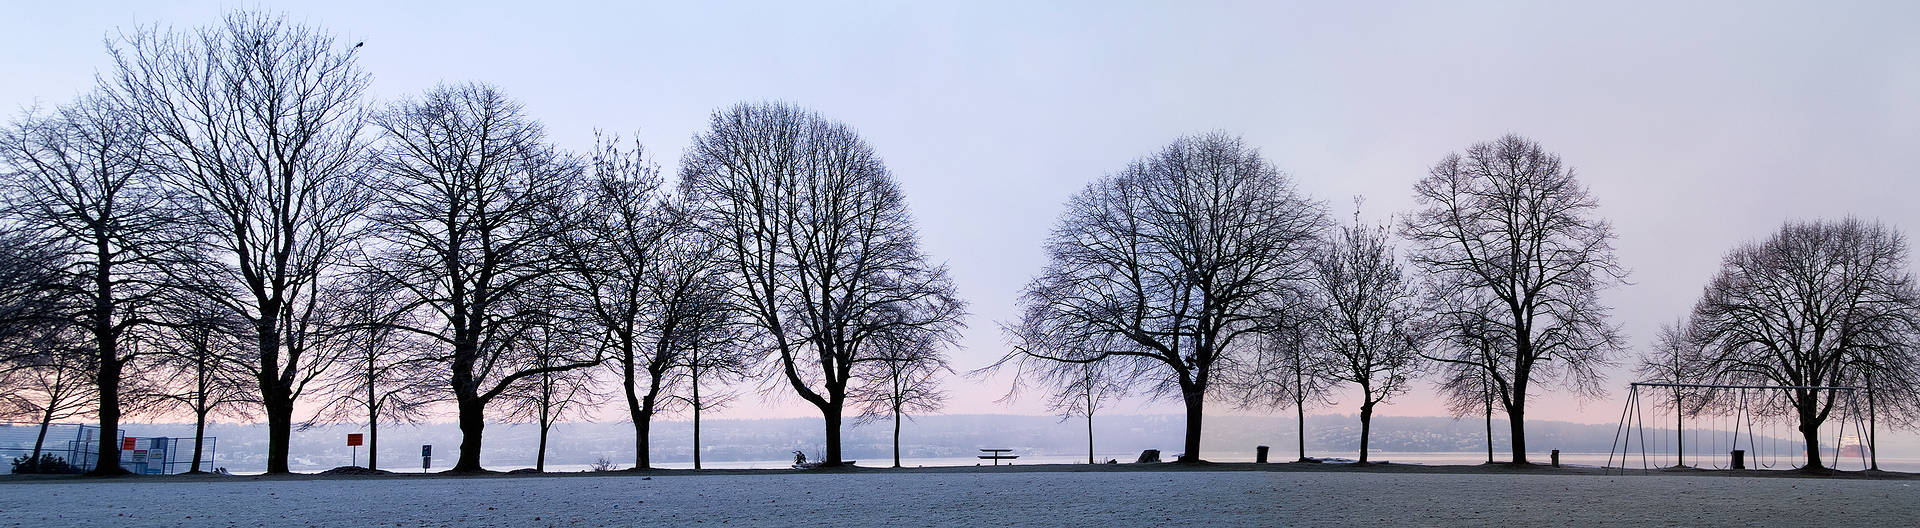 Stanley Park Trees 1 by Jim Friesen